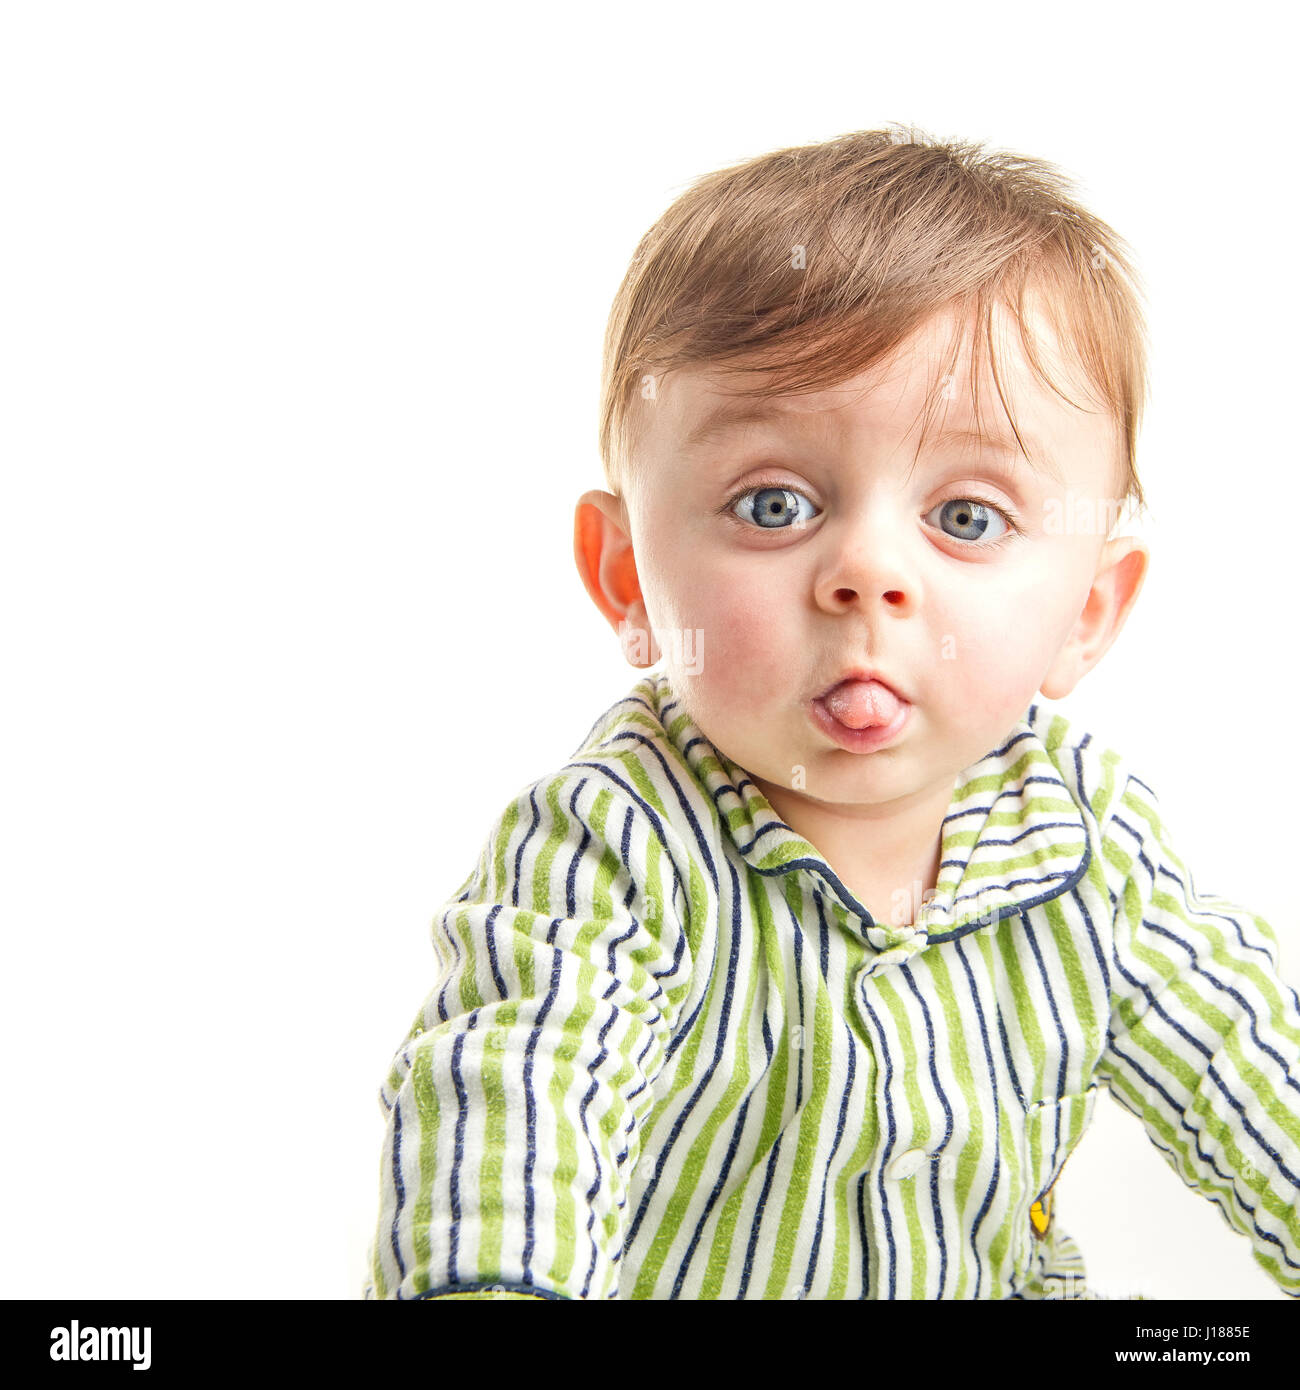 Baby grimacing to the camera on white background - Stock Image